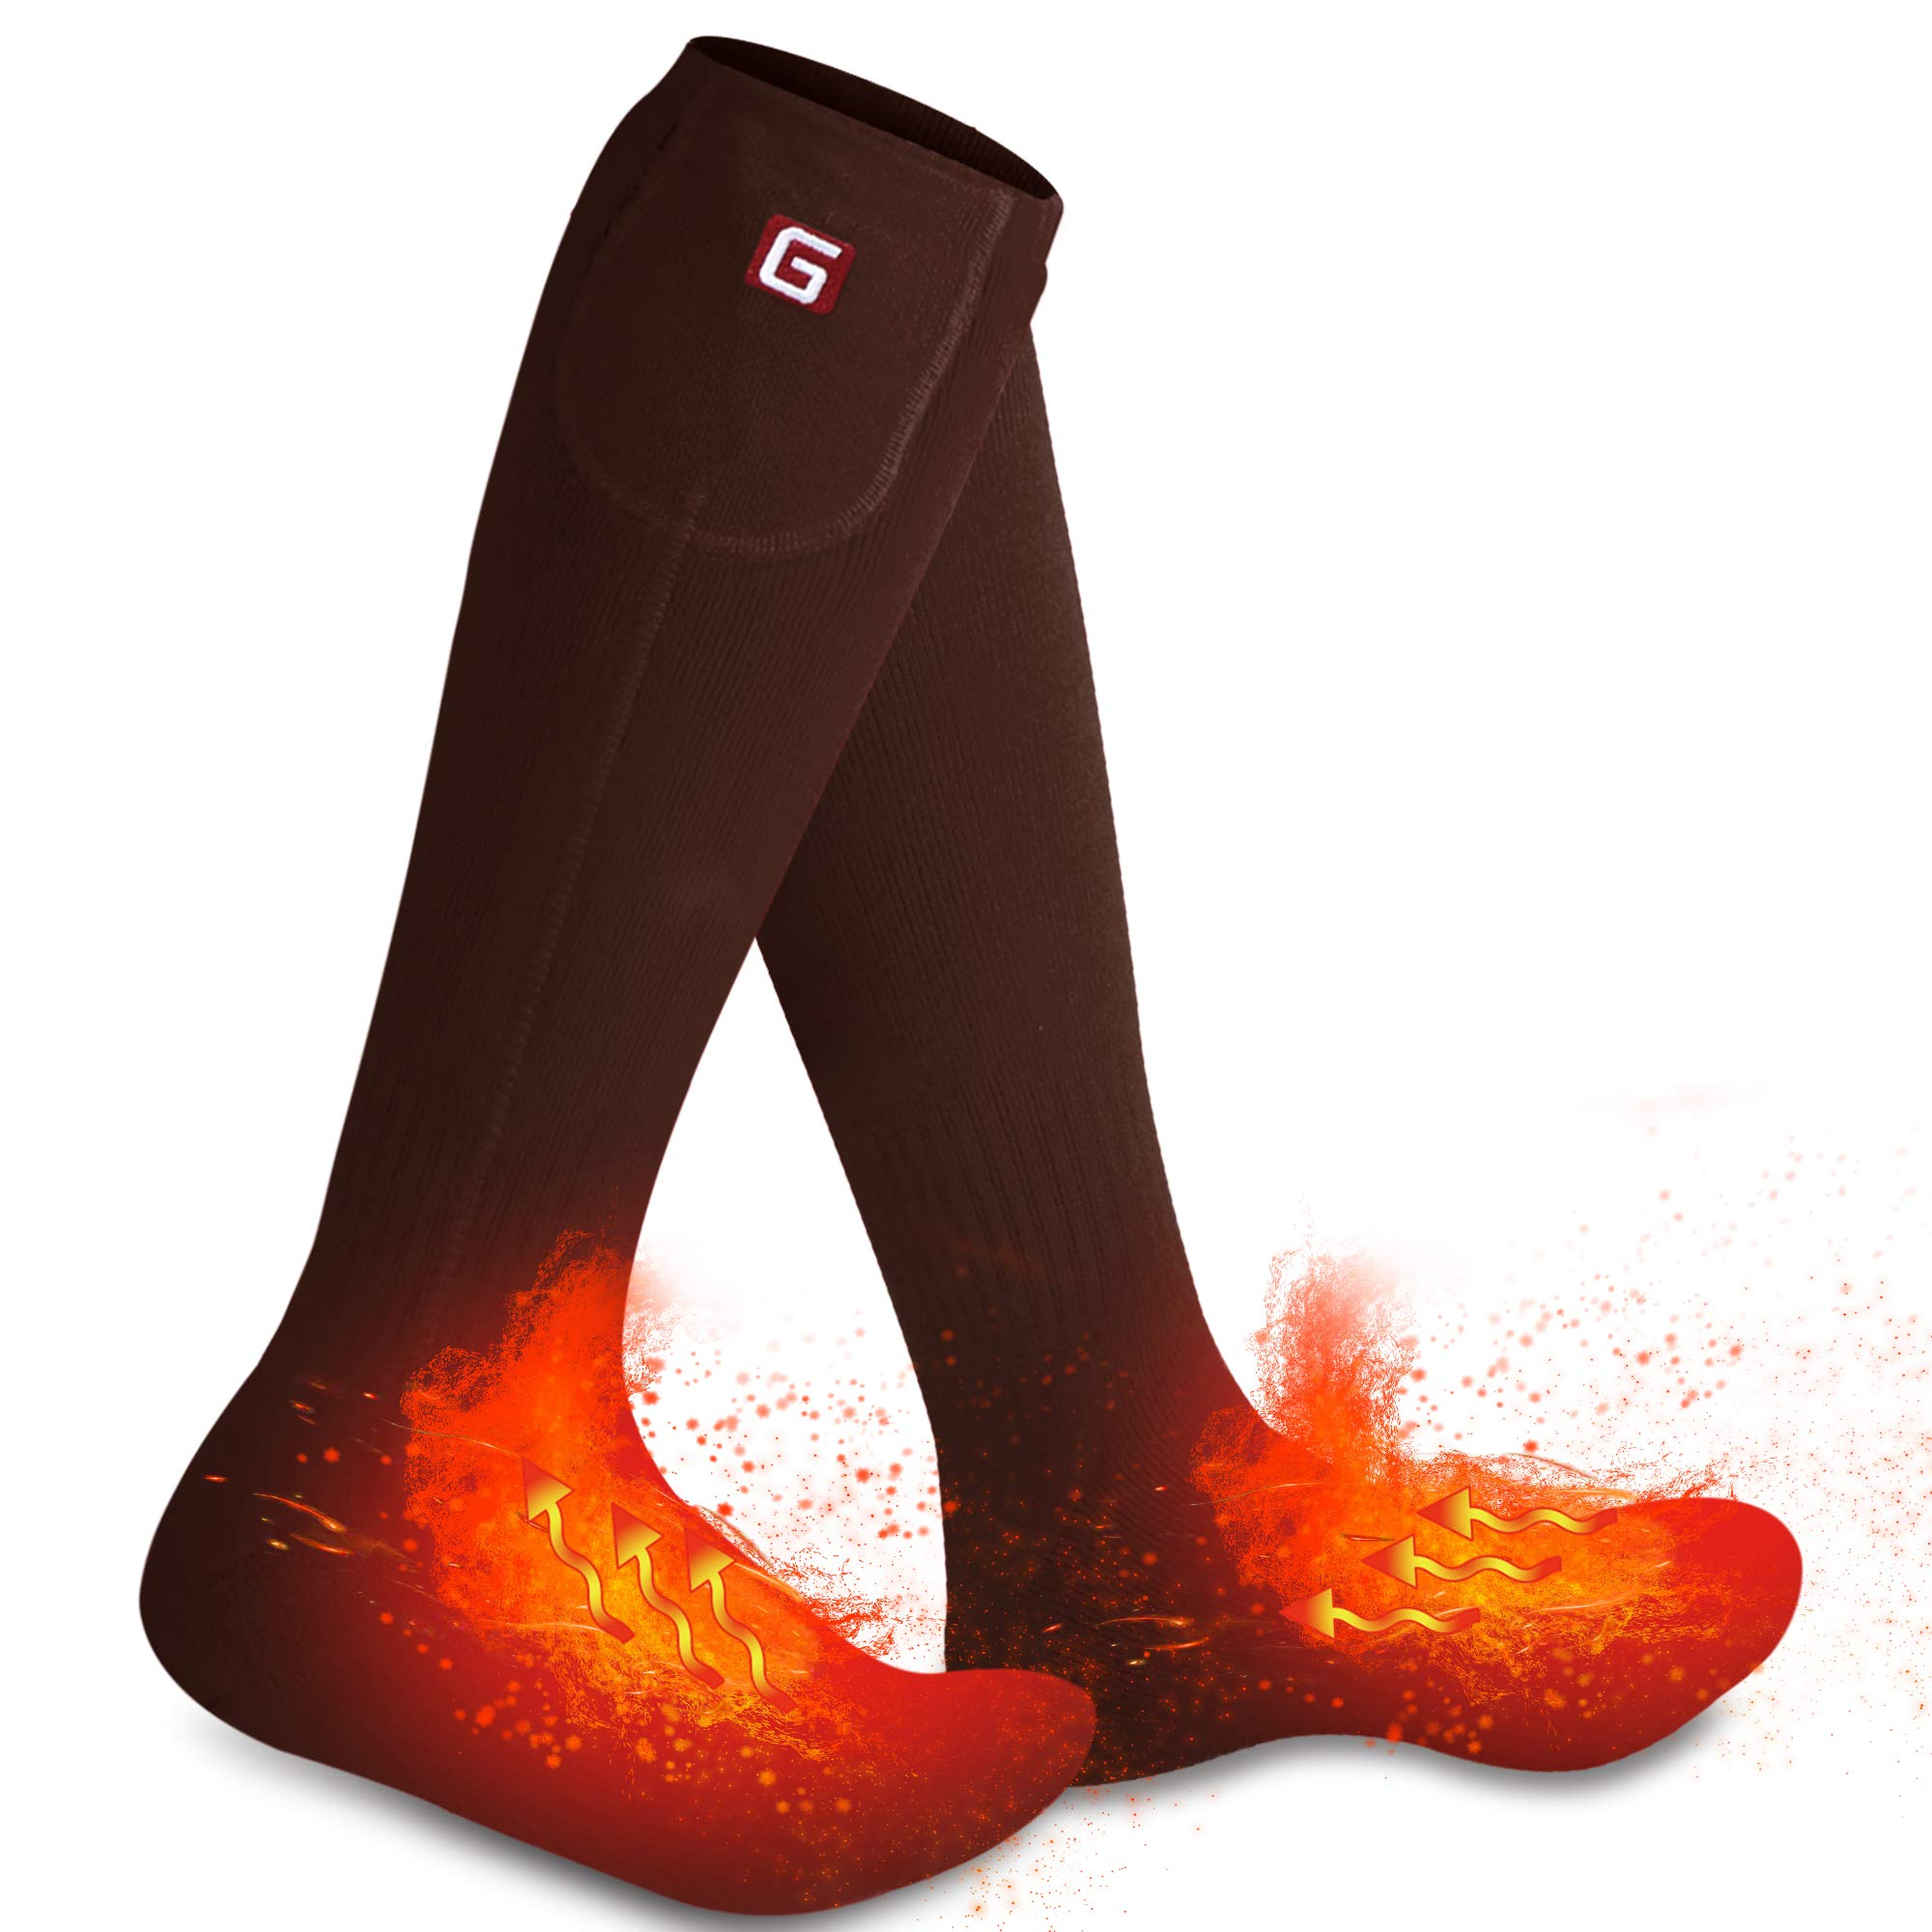 Rechargeable Electric Heated Socks,Men Women Battery Powered Heated Socks Kit,Winter Warm Thermal Heated Socks for Chronically Cold Feet,Novelty Sports Outdoors Camping Hiking Socks (Brown) by Autocastle